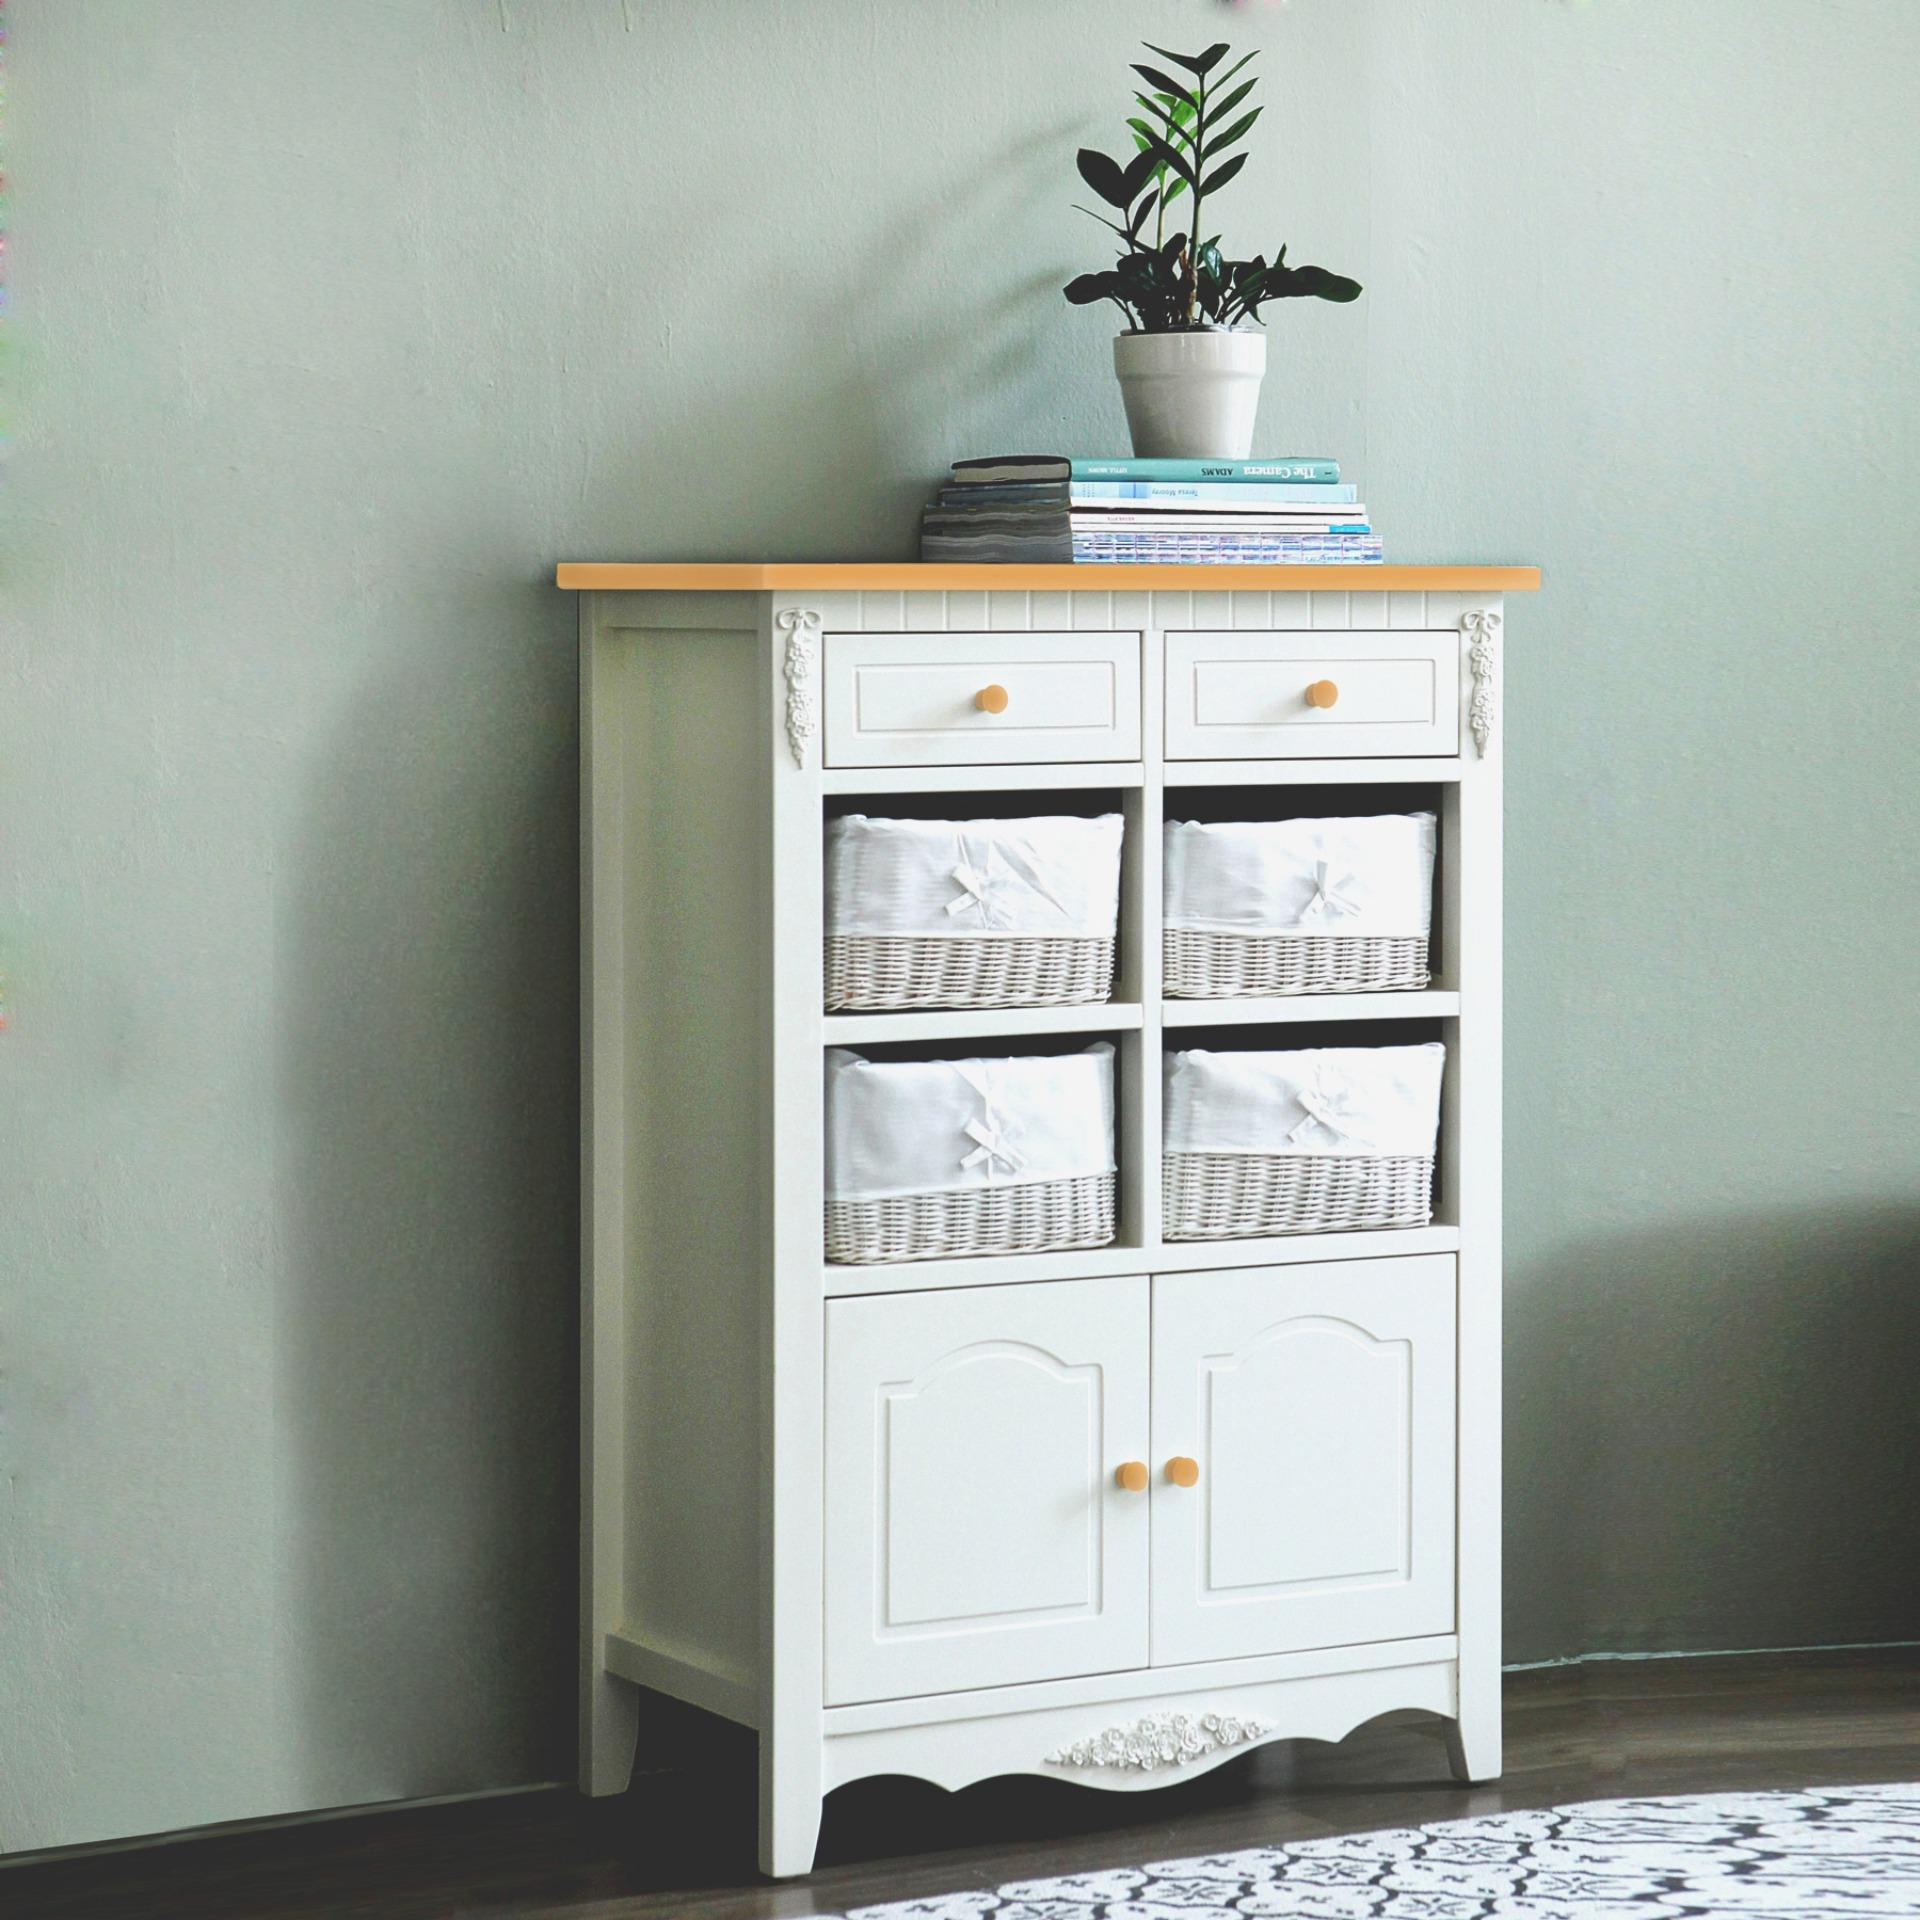 Beli The Olive House Lemari Kabinet Jasmine 8 Drawers Top Oak Online Murah